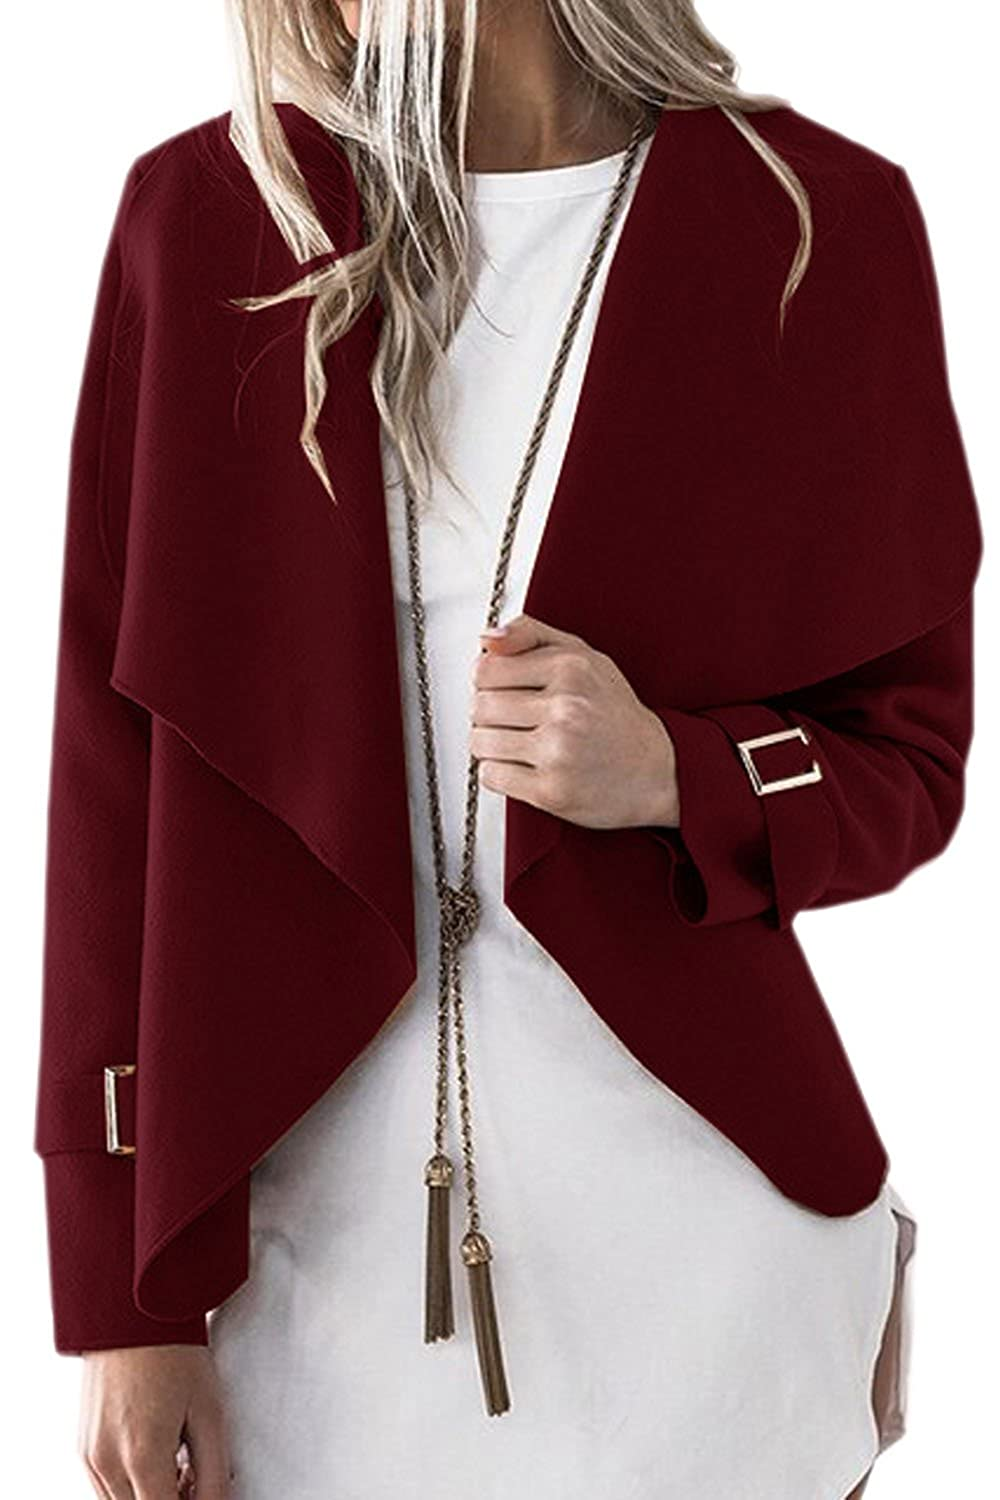 Women Casual Winter Open Front Solid Cardigan Outercoat Trenchcoat Top CAVI282